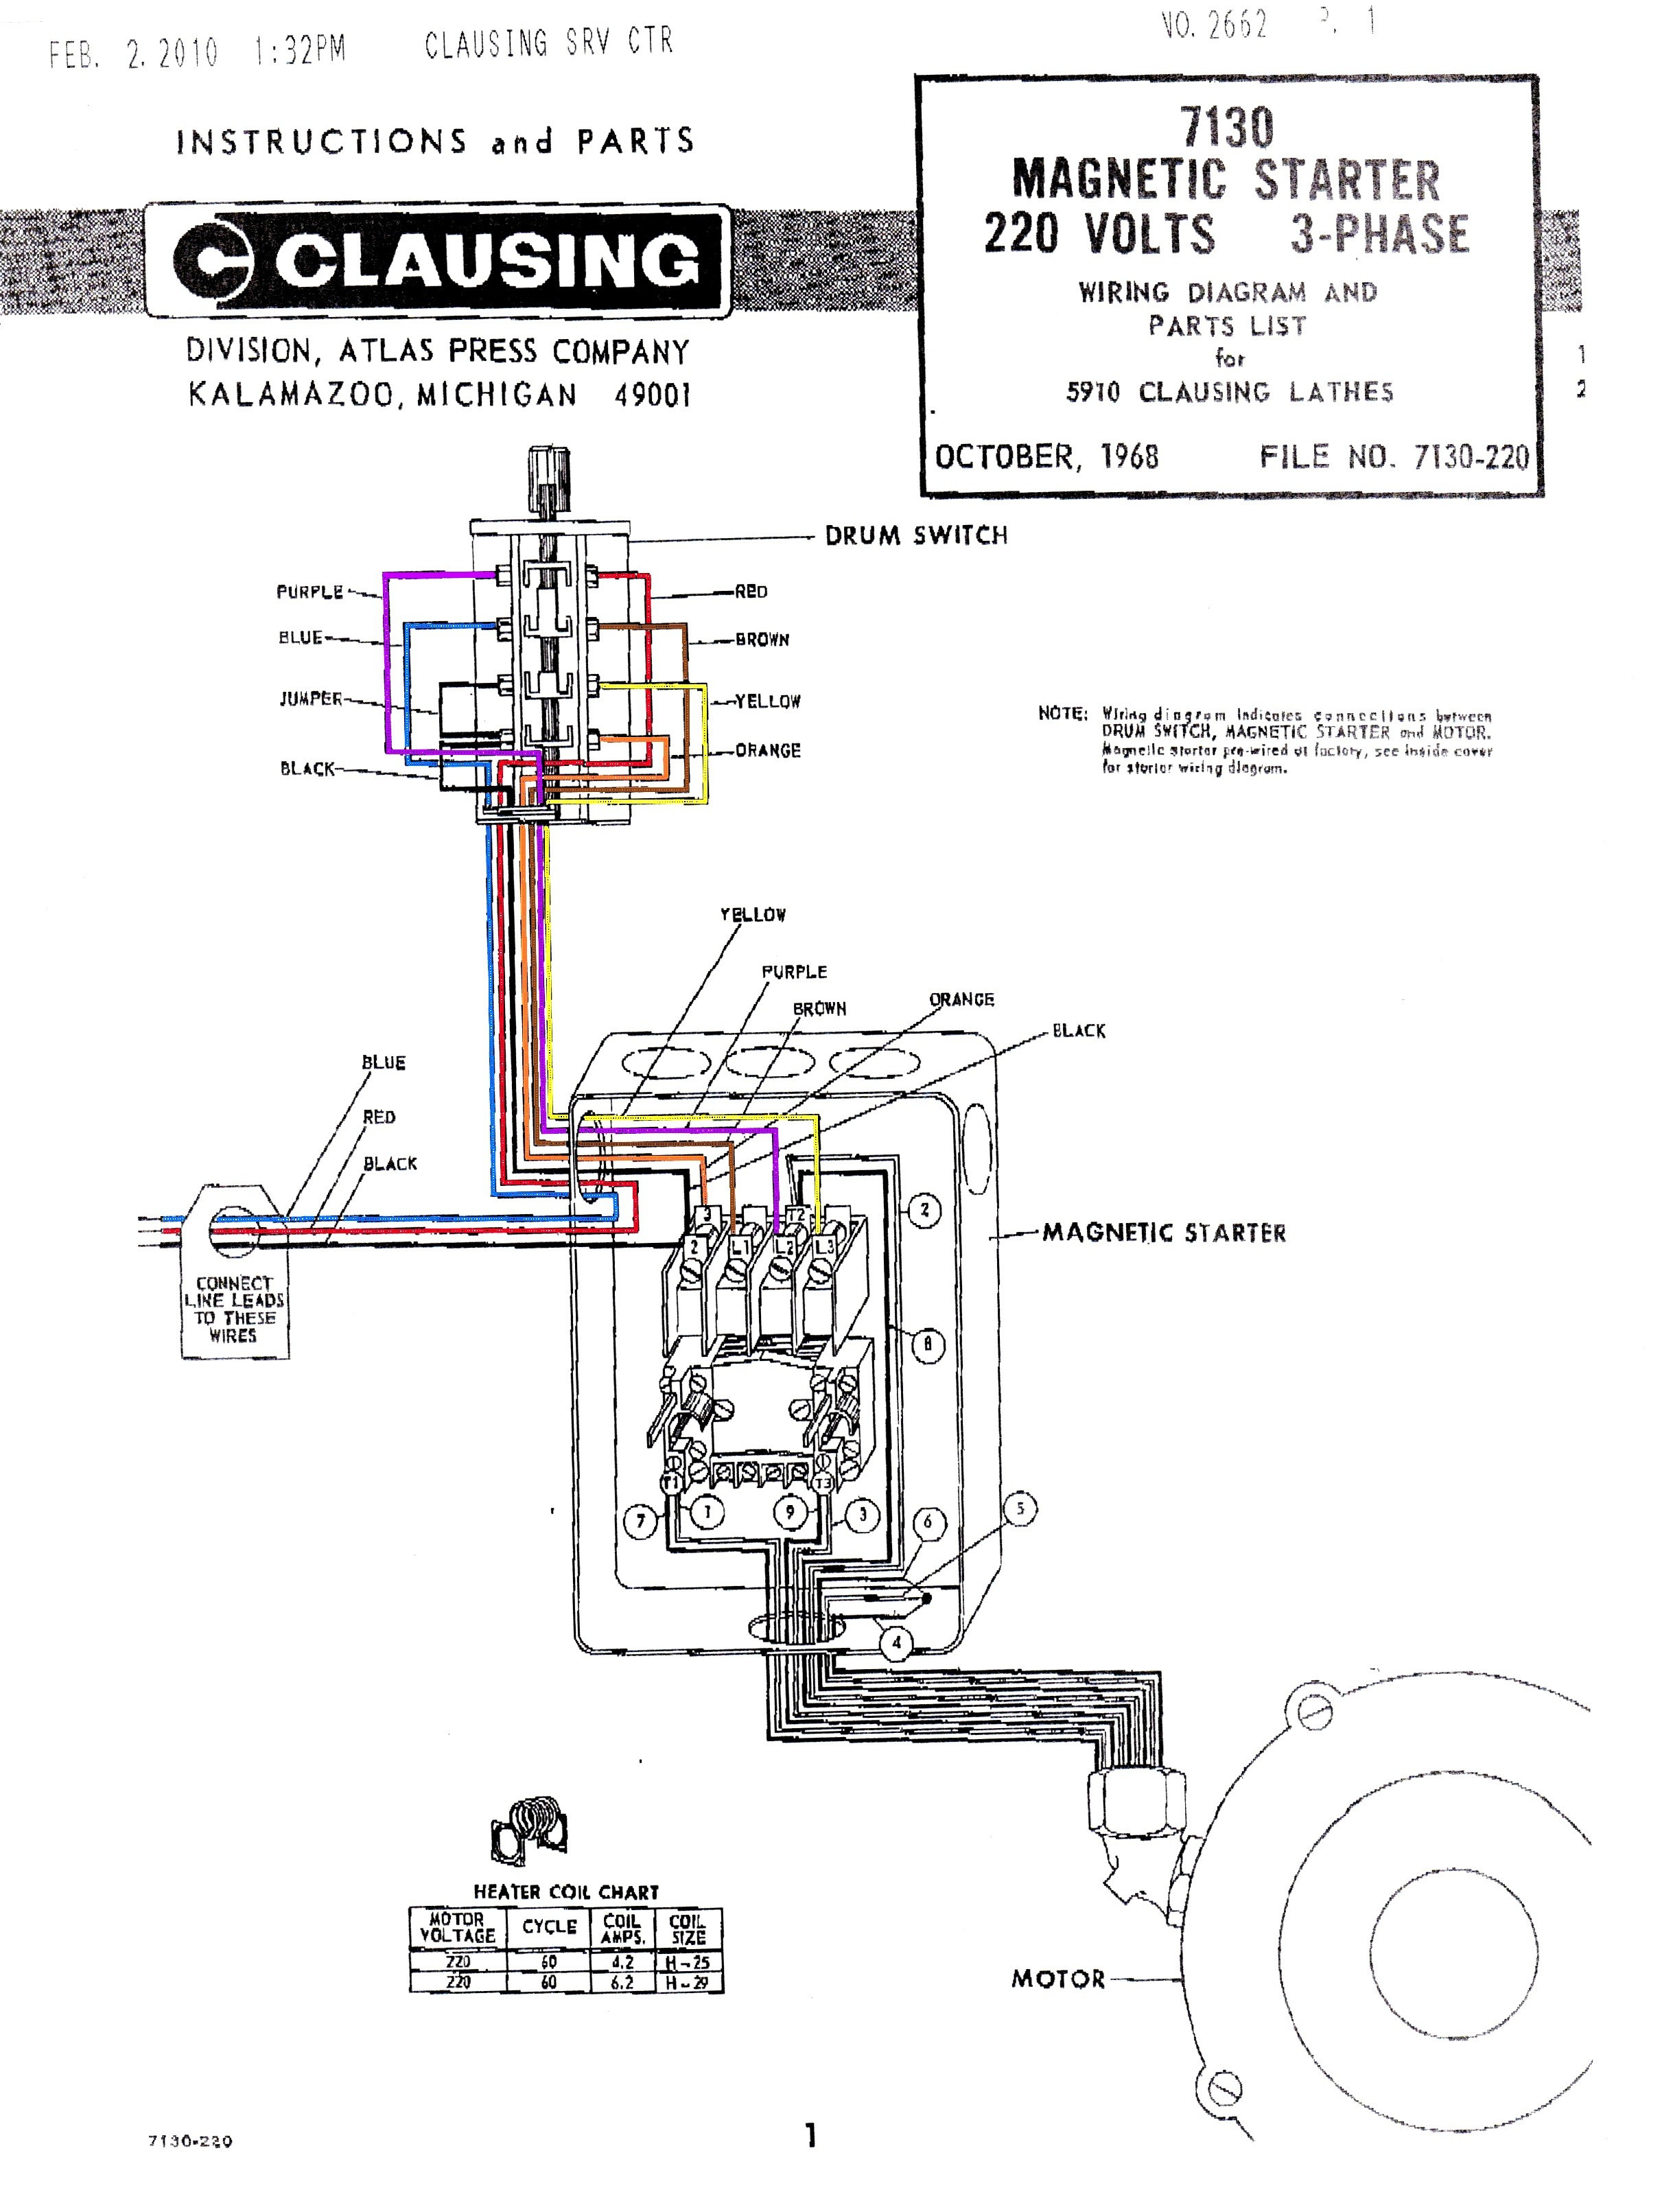 furnas motor starter wiring diagram Collection-siemens motor starter wiring diagram schematics wiring diagrams u2022 rh theanecdote co Electric Motor Starters Wiring 13-t